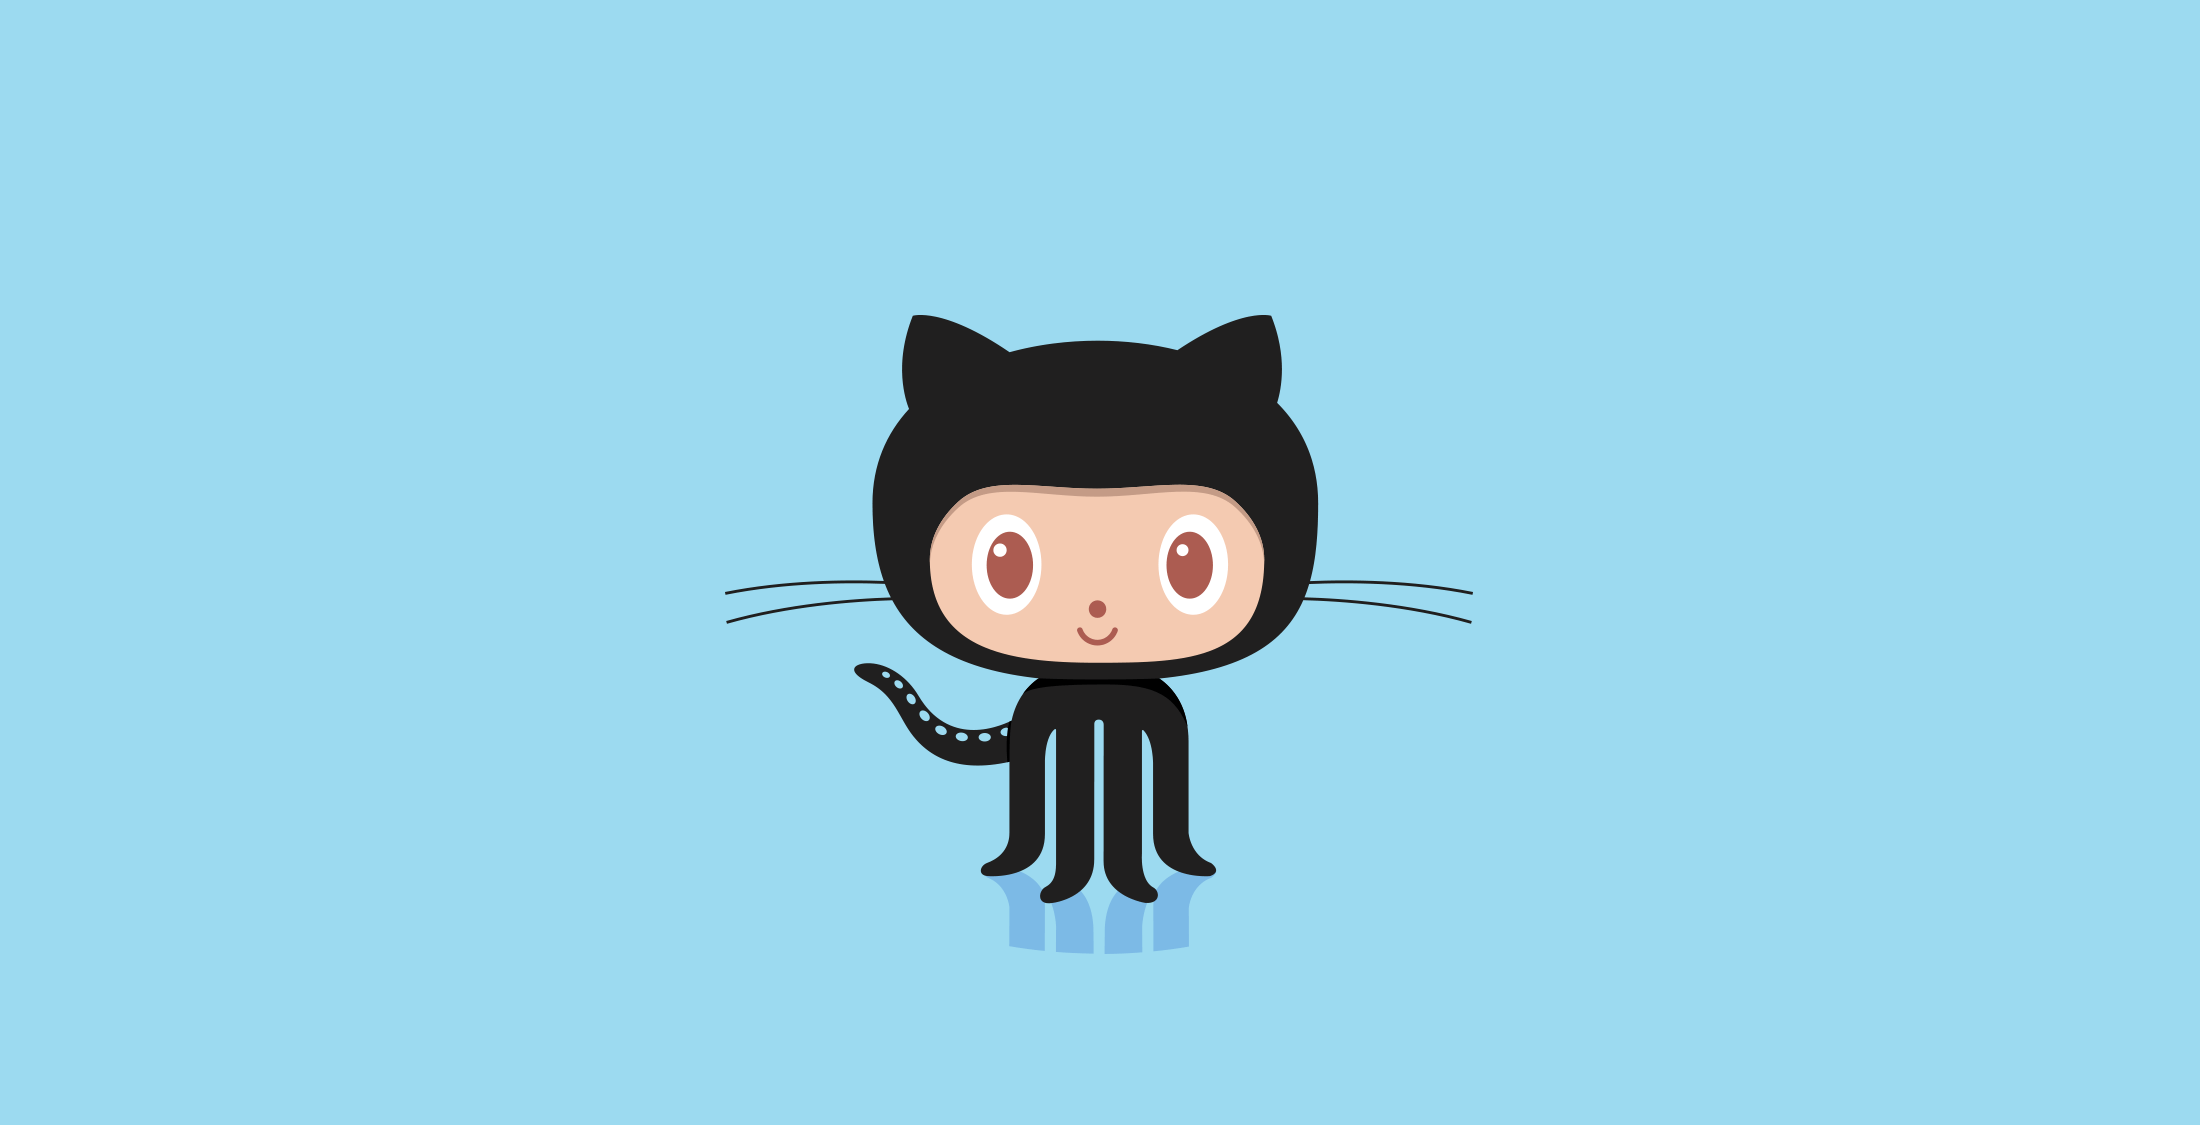 Git commits: An Effective Style Guide